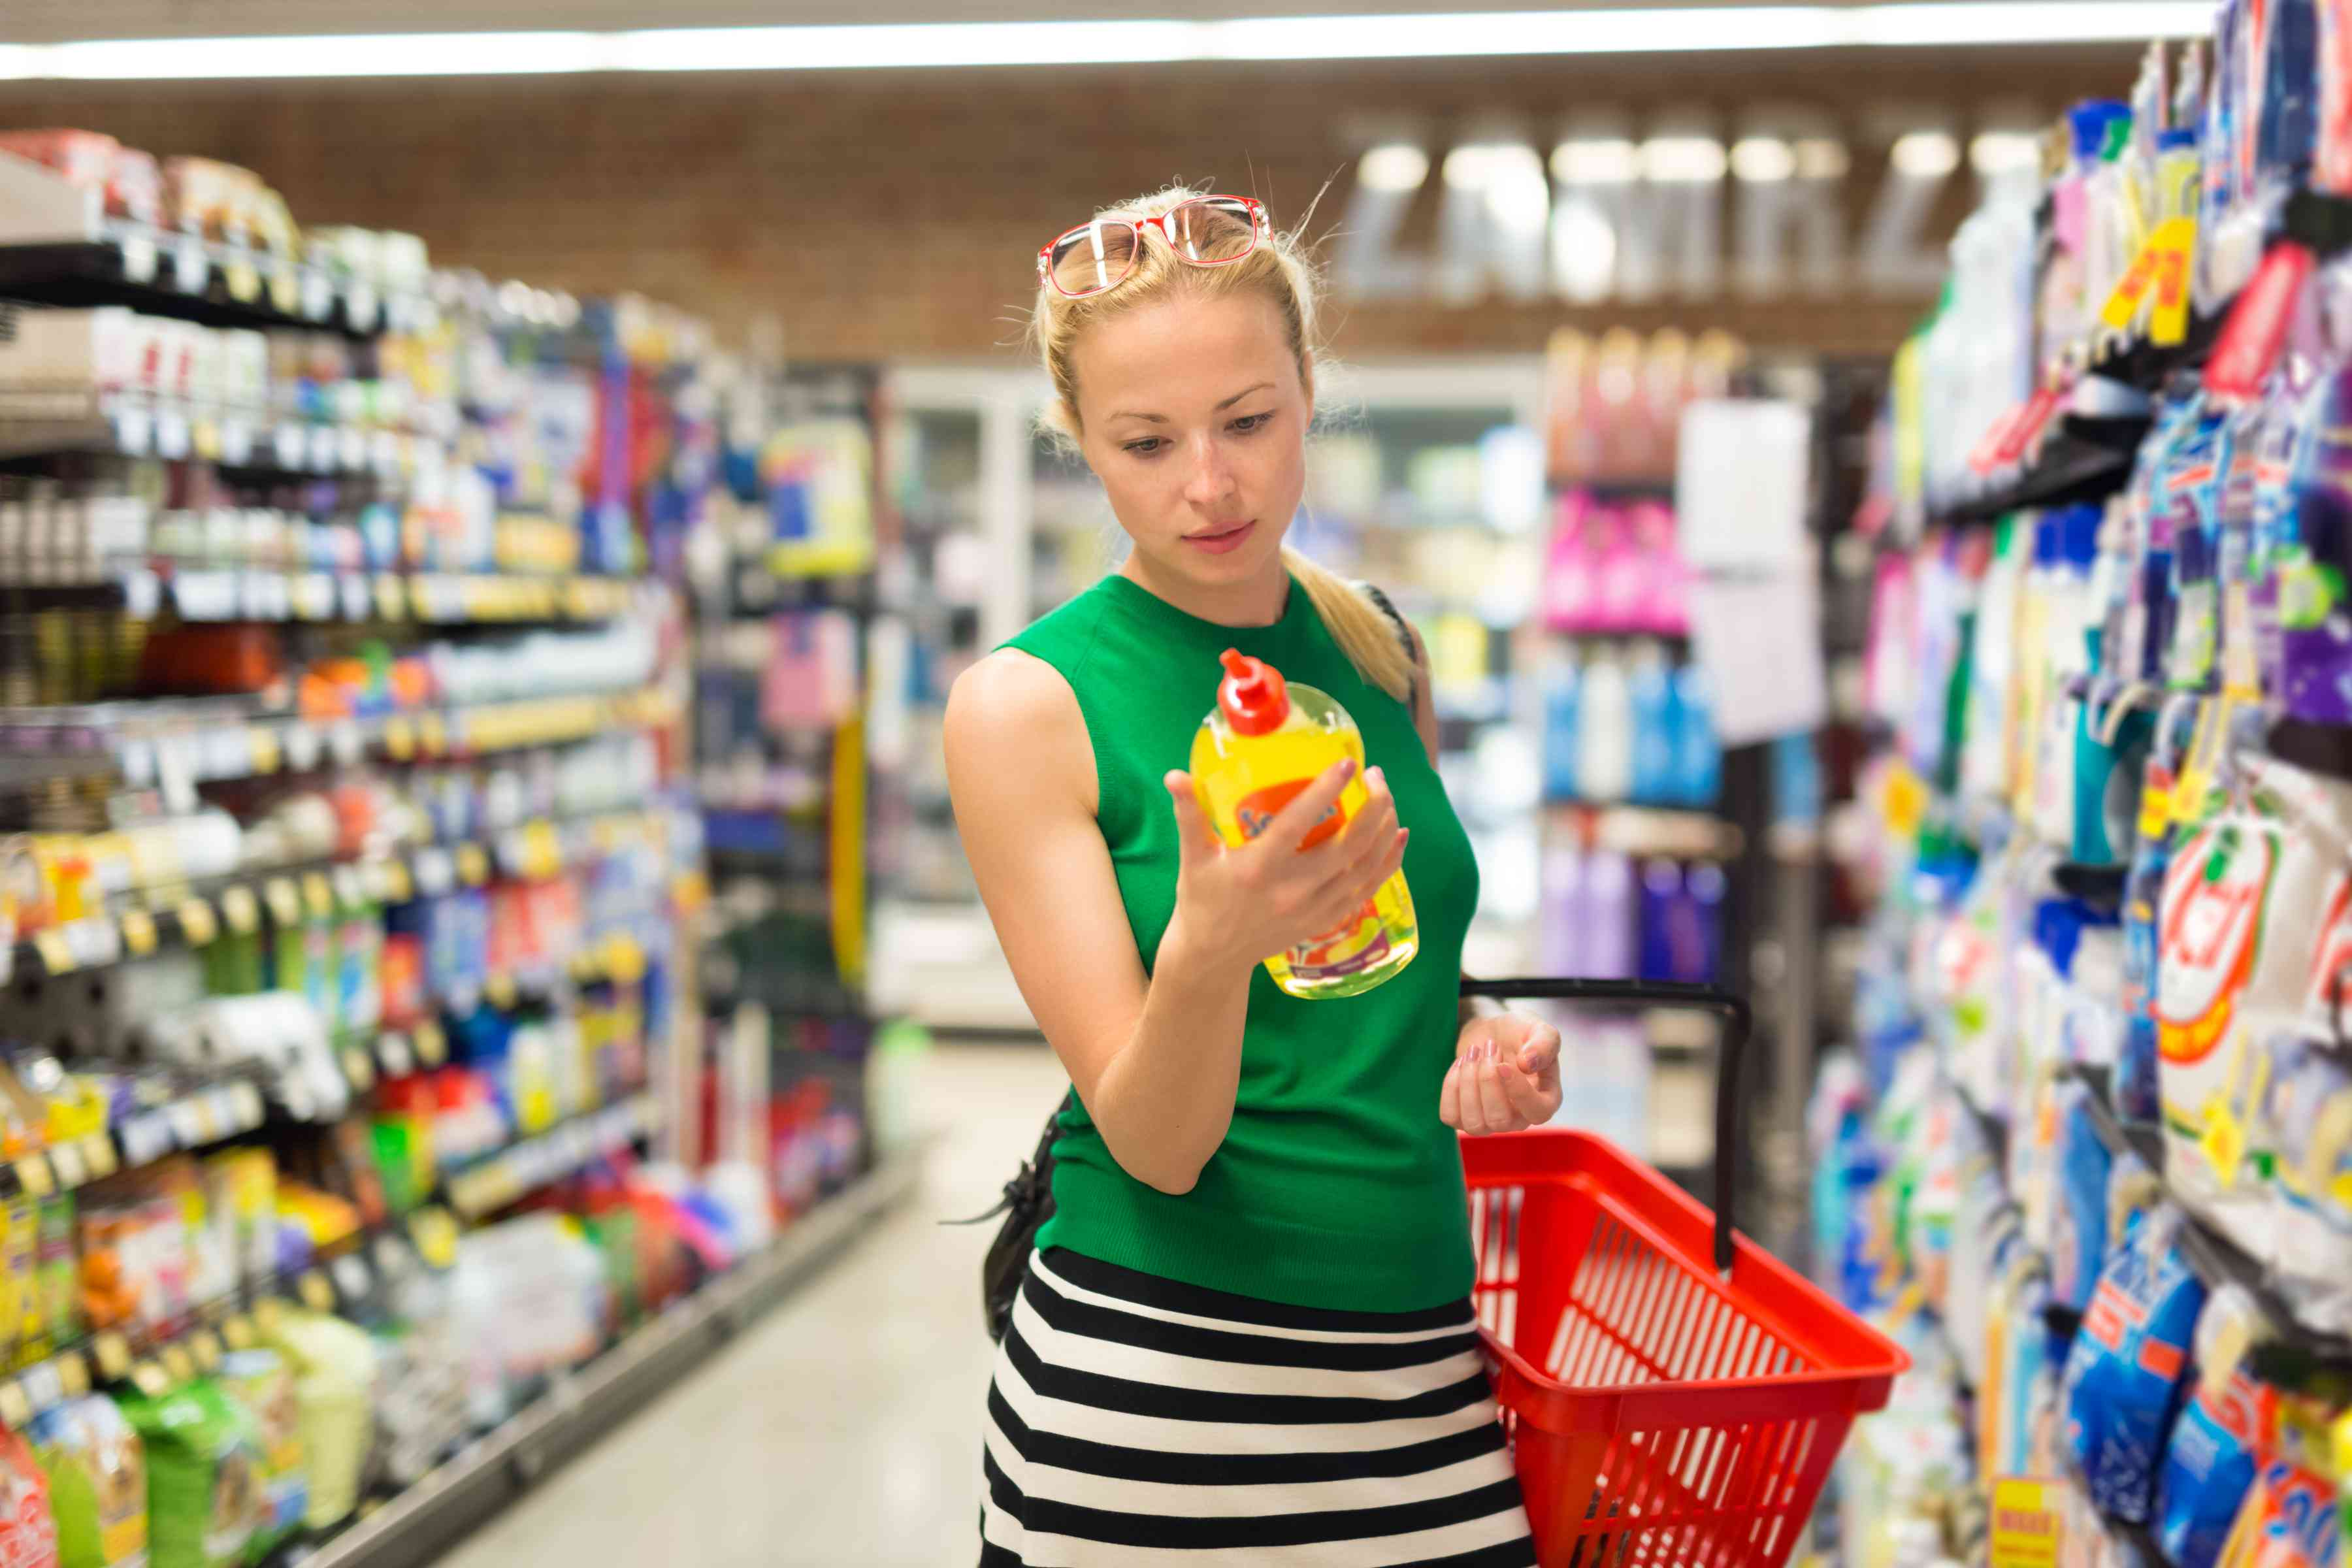 Woman shopping for cleaner at the supermarket